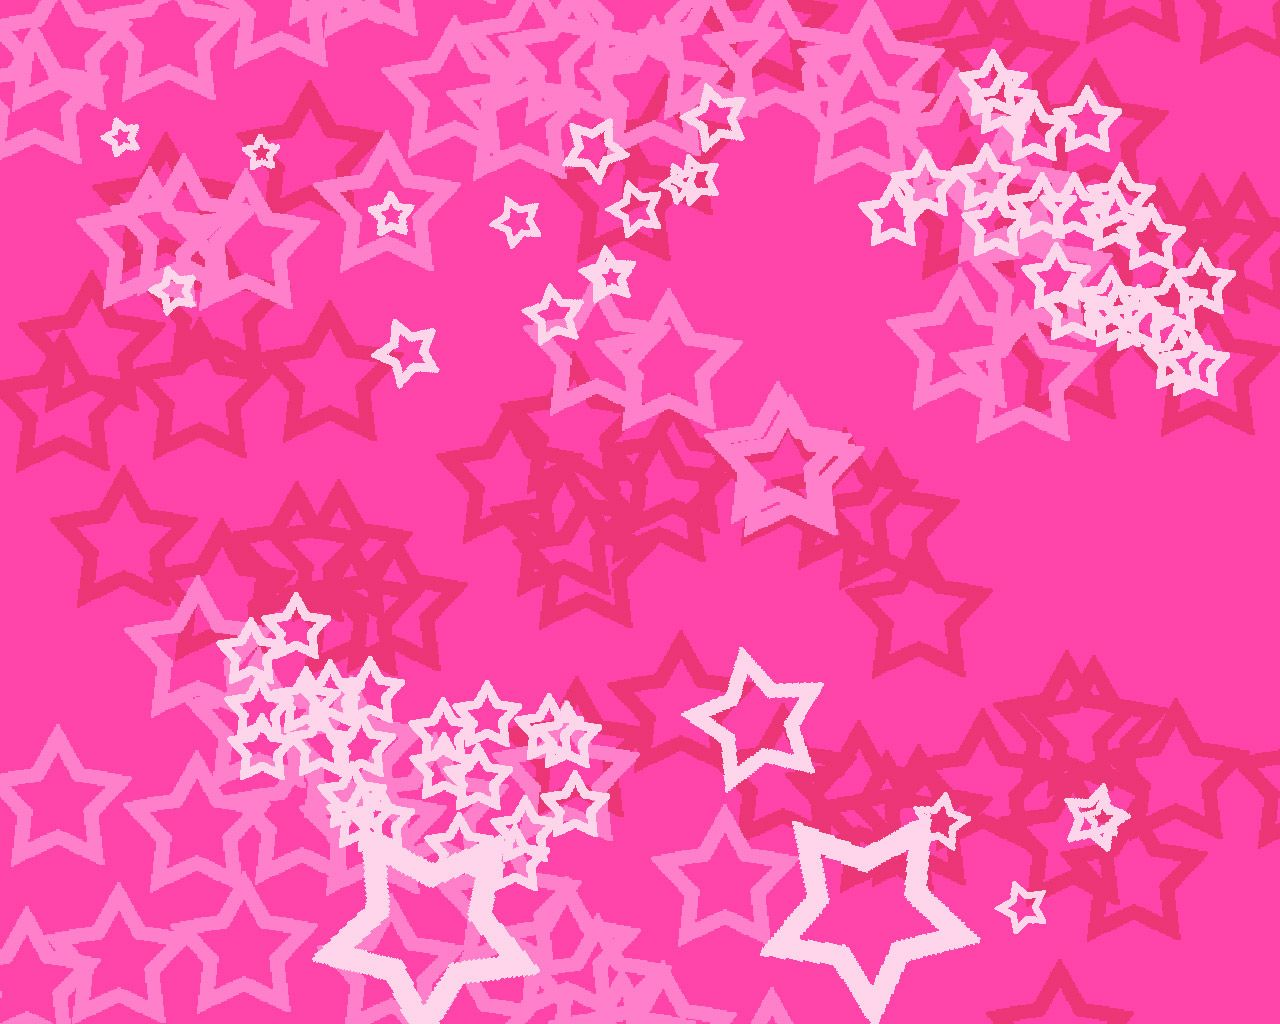 Free Download Pink Stars Wallpaper Hd Widescreen Image Pink Wallpaper Pink Glitter Wallpaper Cool Wallpapers Girly